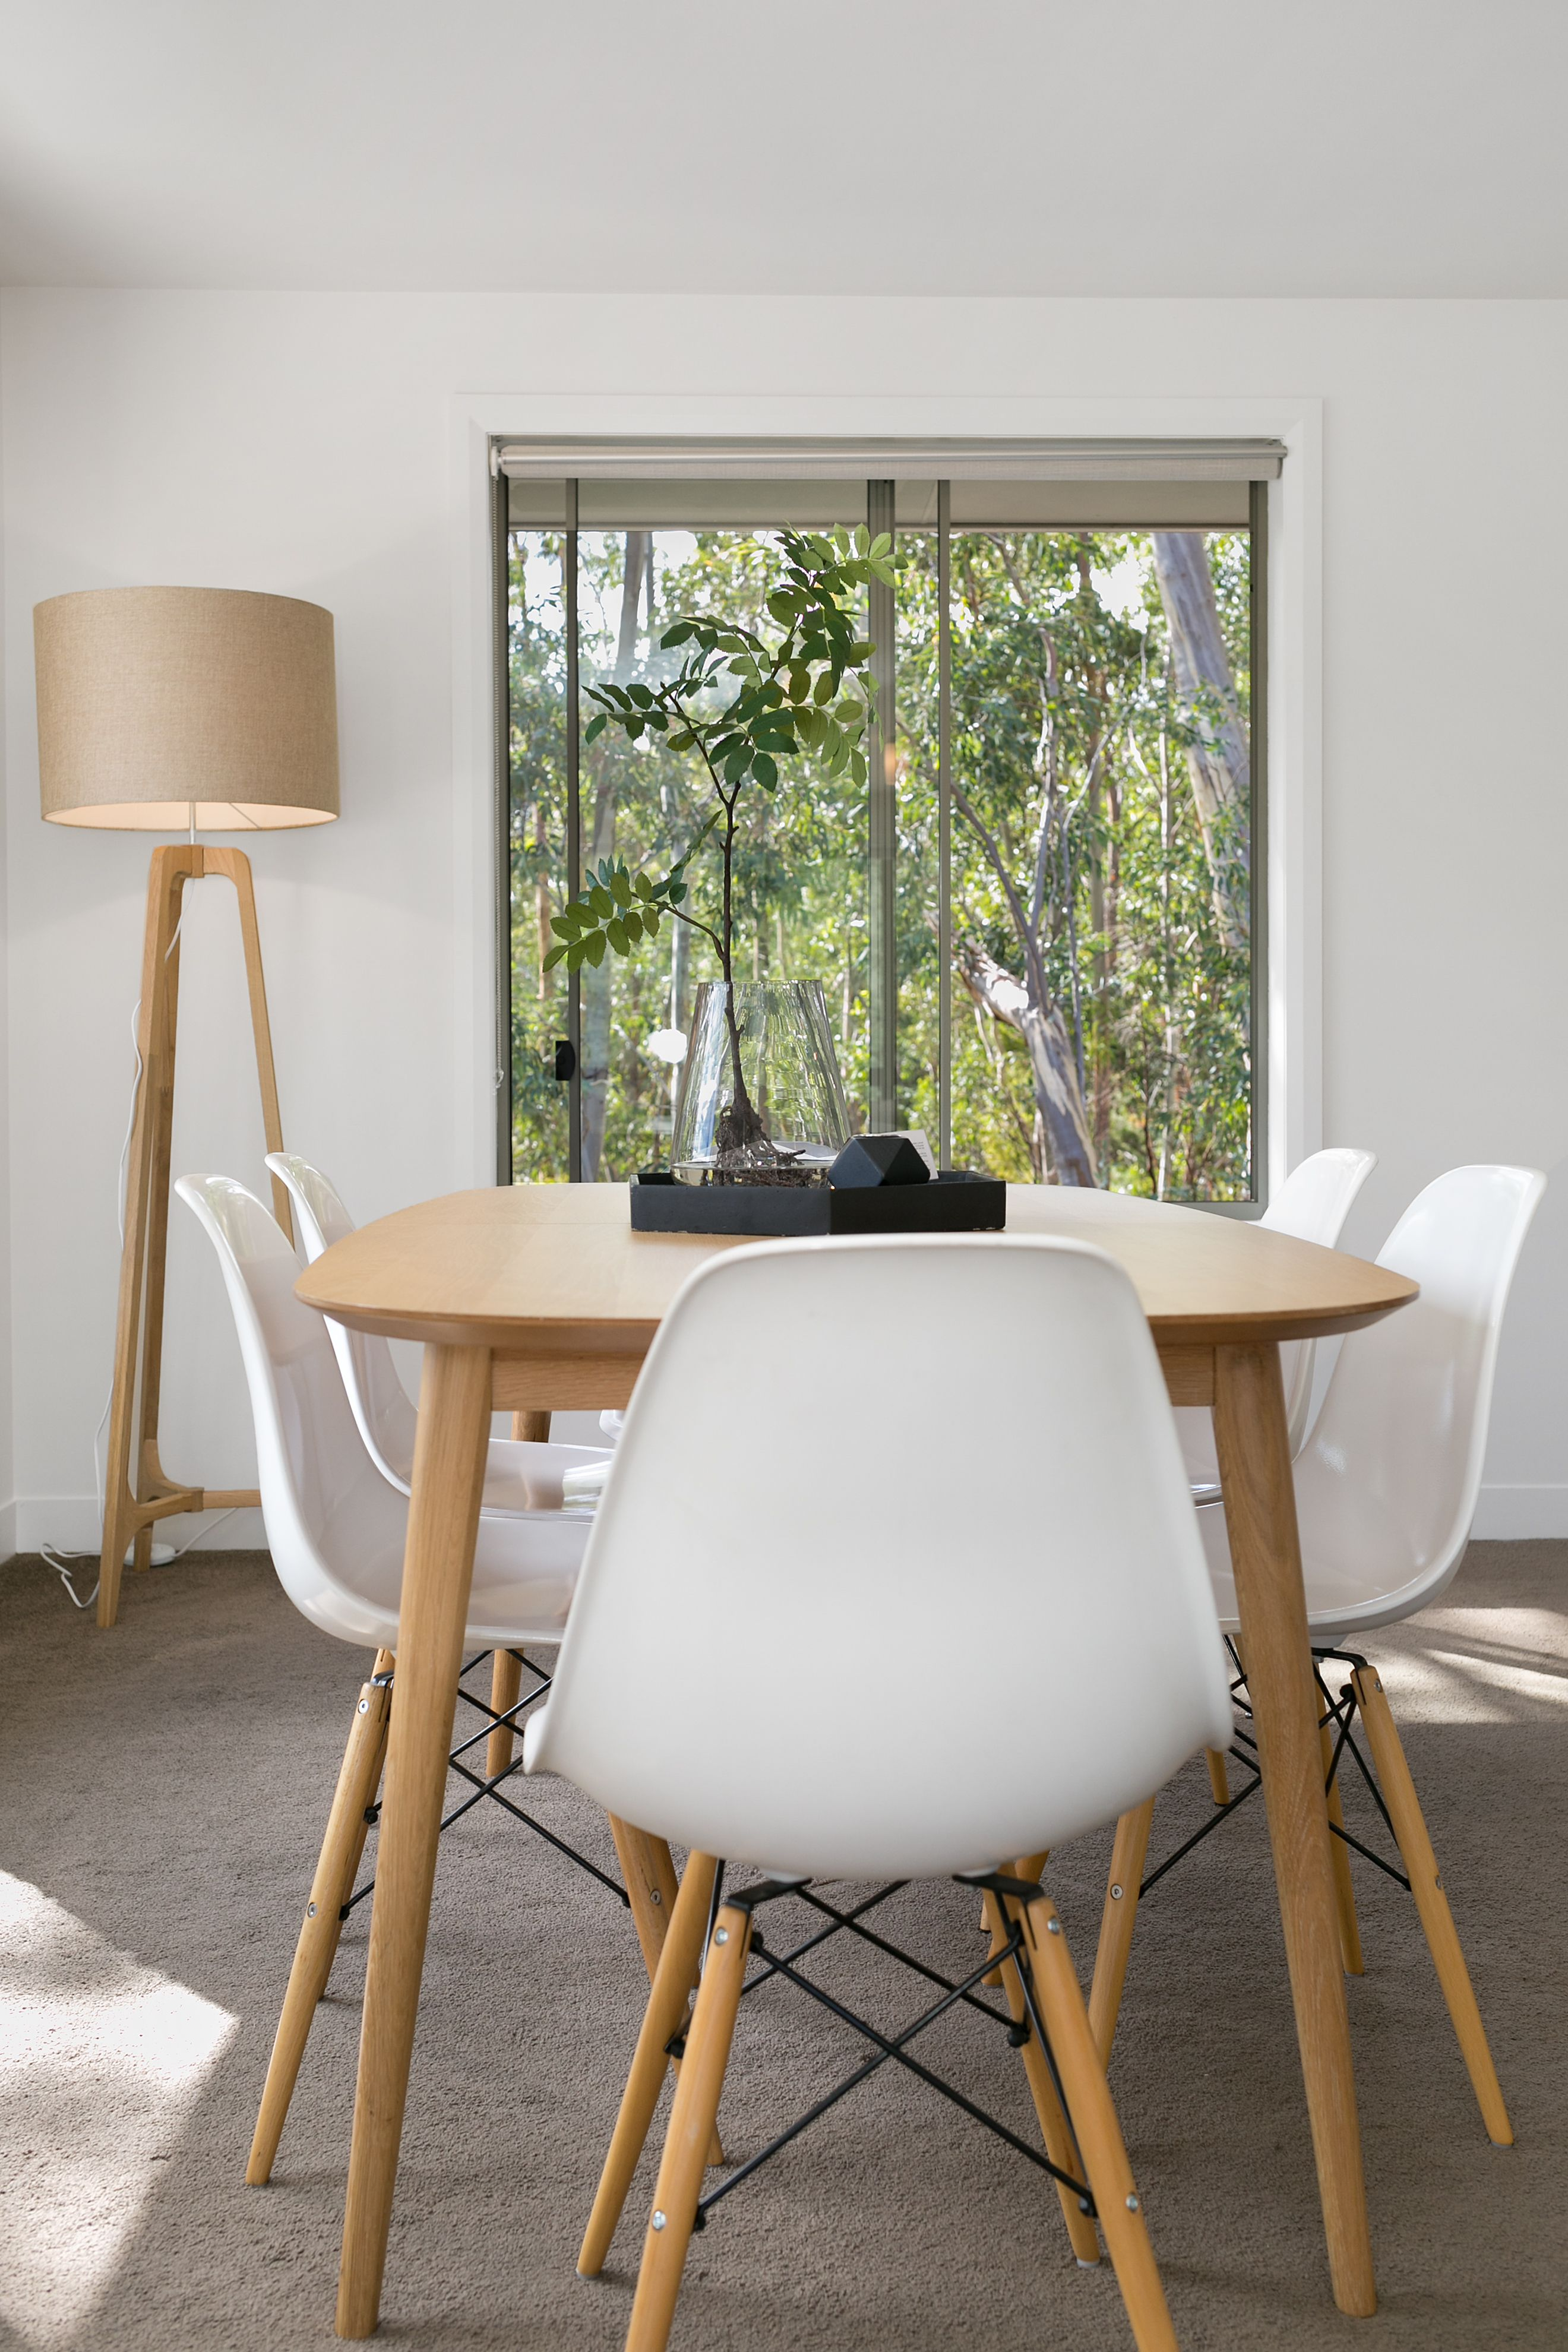 Dining Table Floor Lamp Bush Setting Replica Eames Chairs